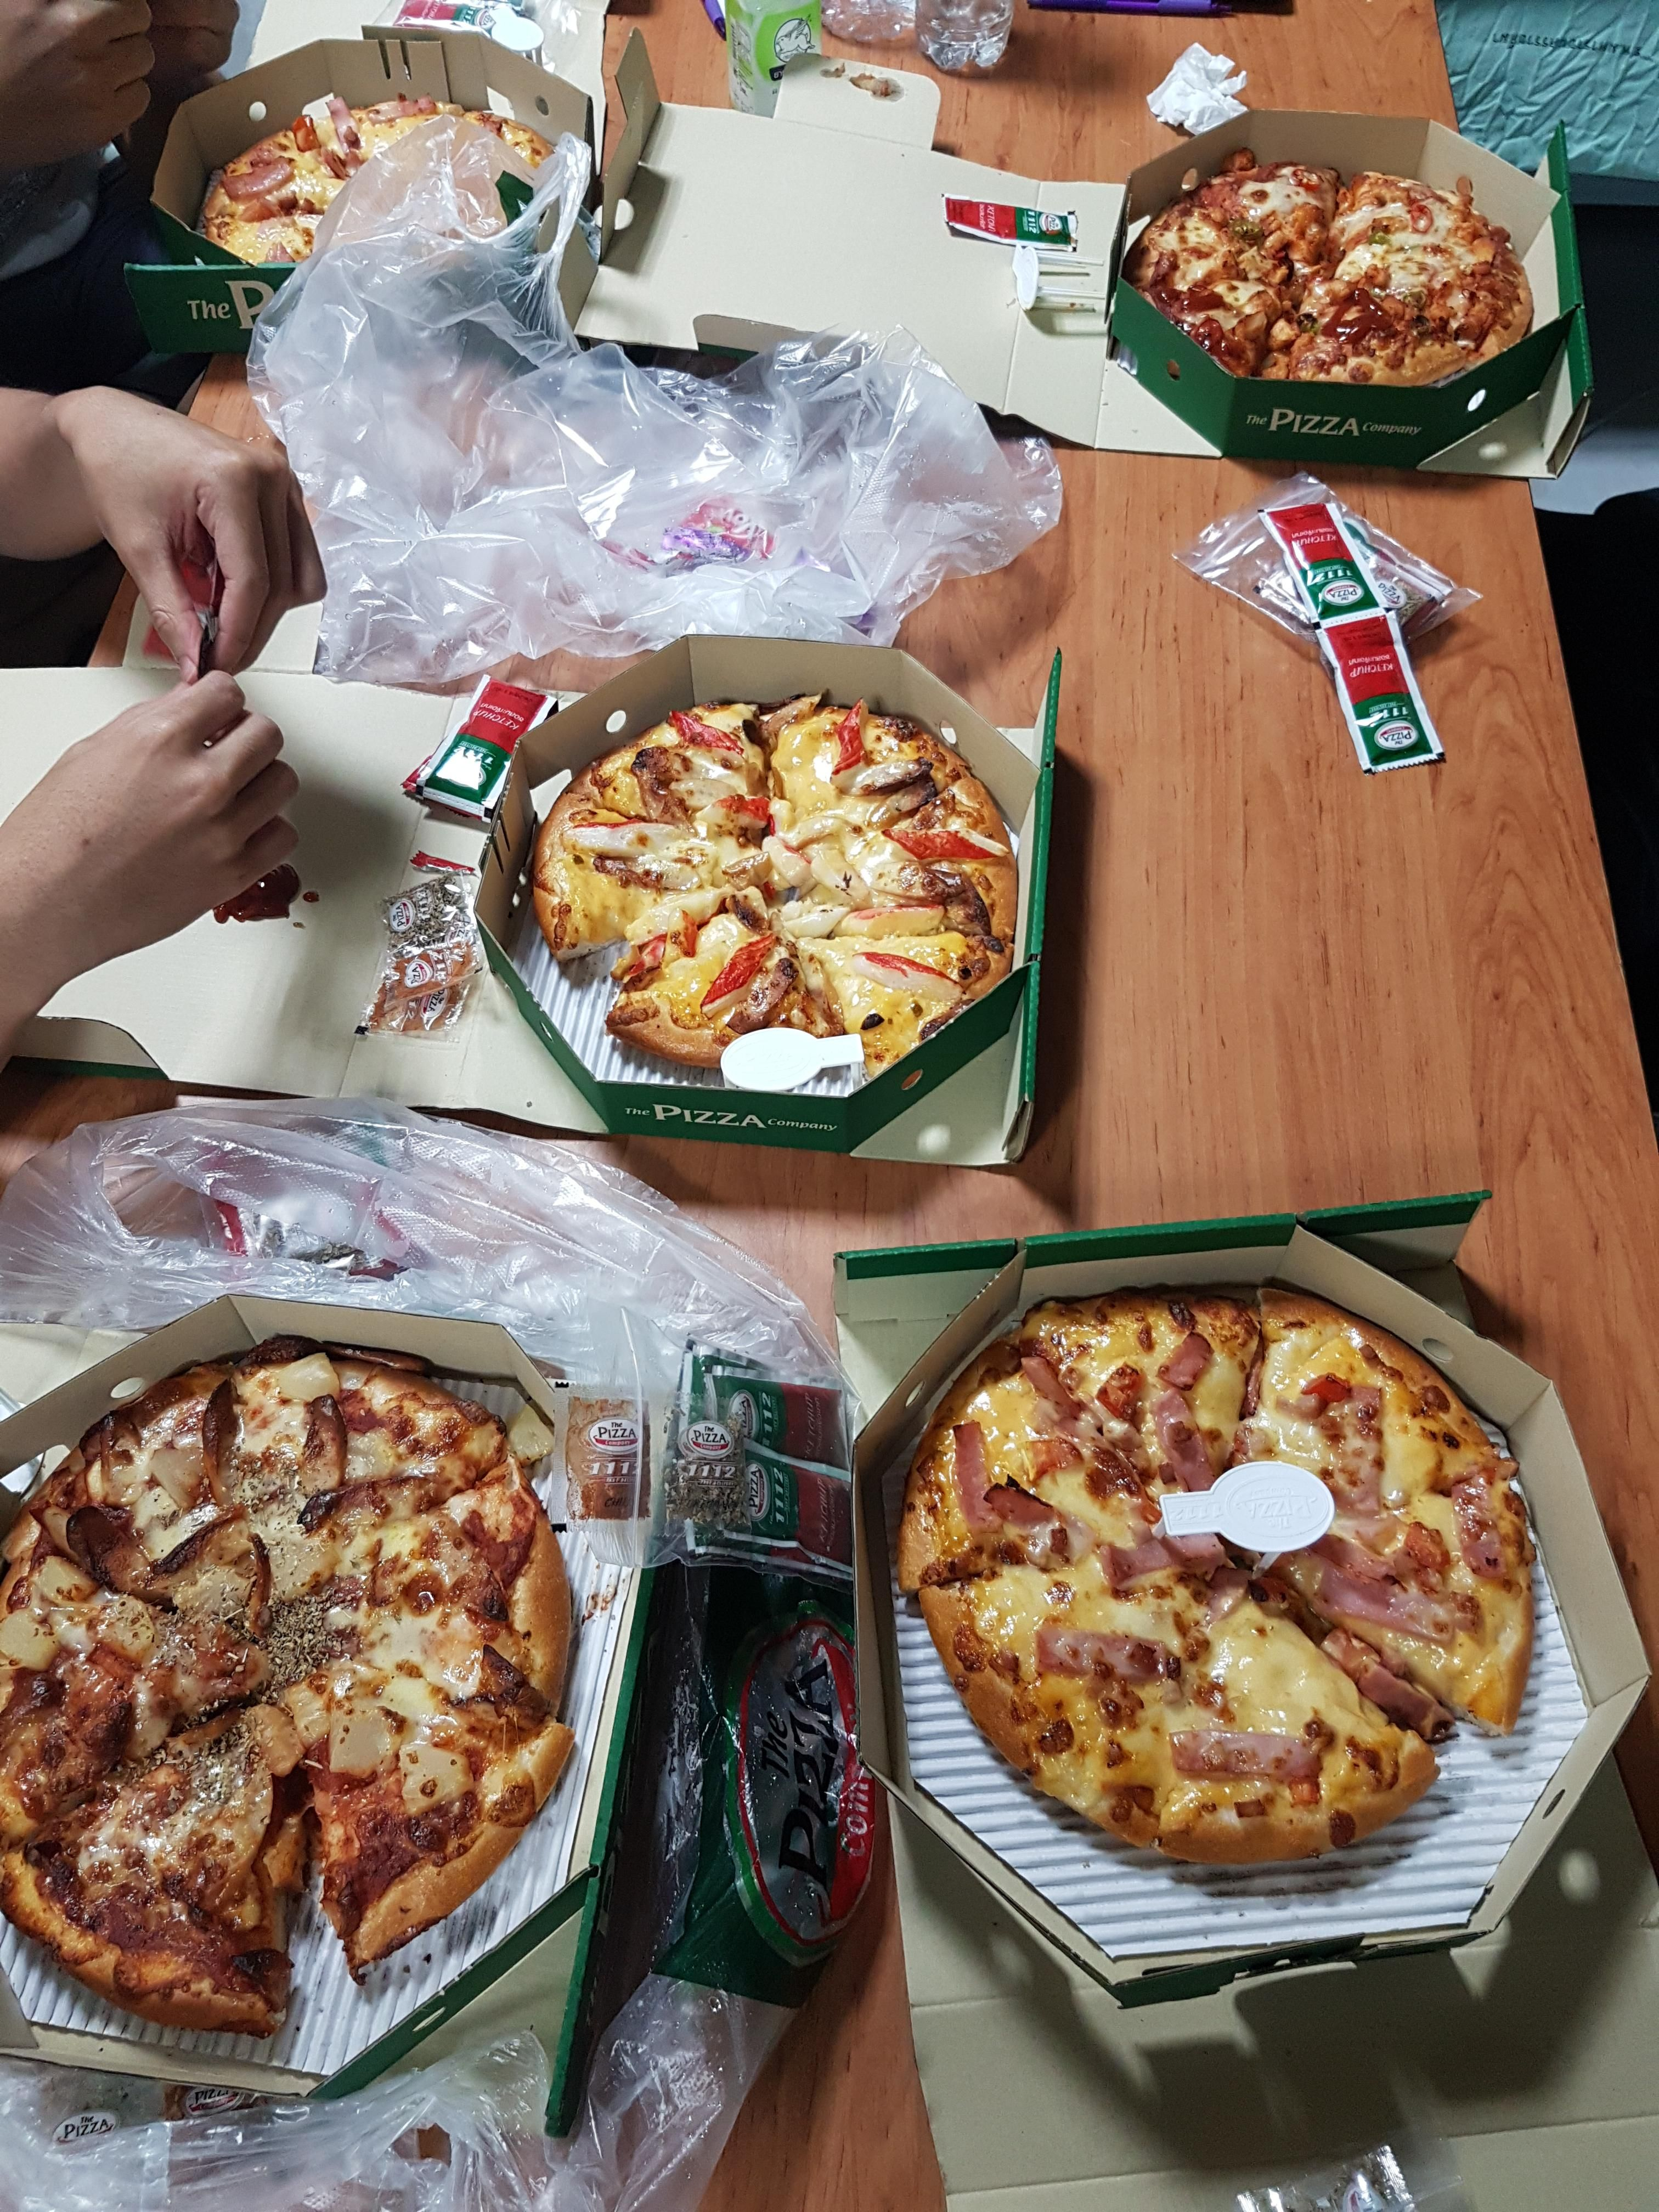 I Ate Pizza Party With Friends Food Snapchat Food Delicacy Food